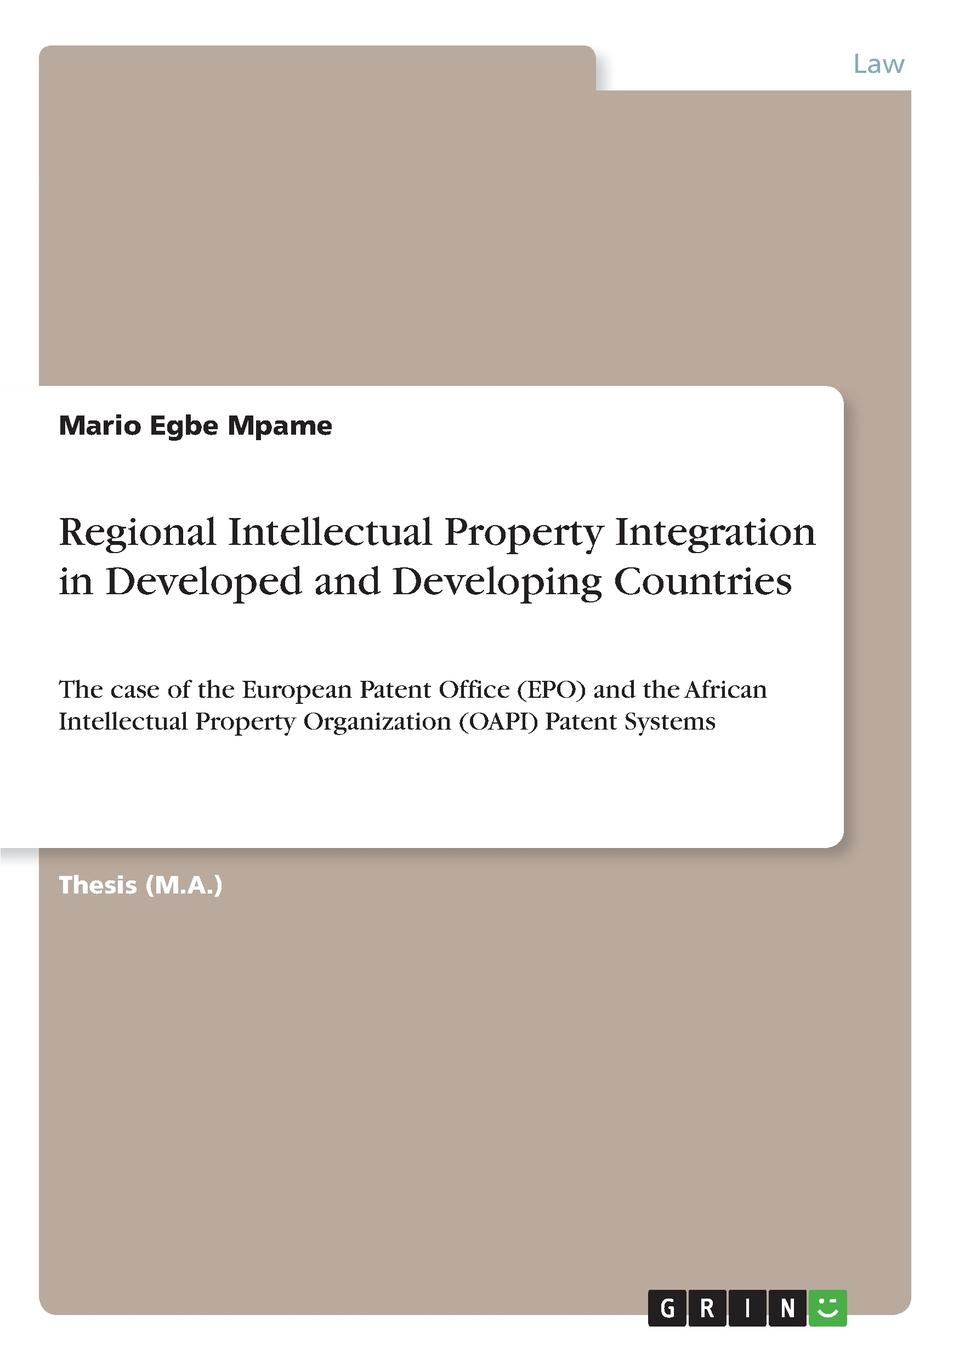 Mario Egbe Mpame Regional Intellectual Property Integration in Developed and Developing Countries intellectual property a guide for engineers